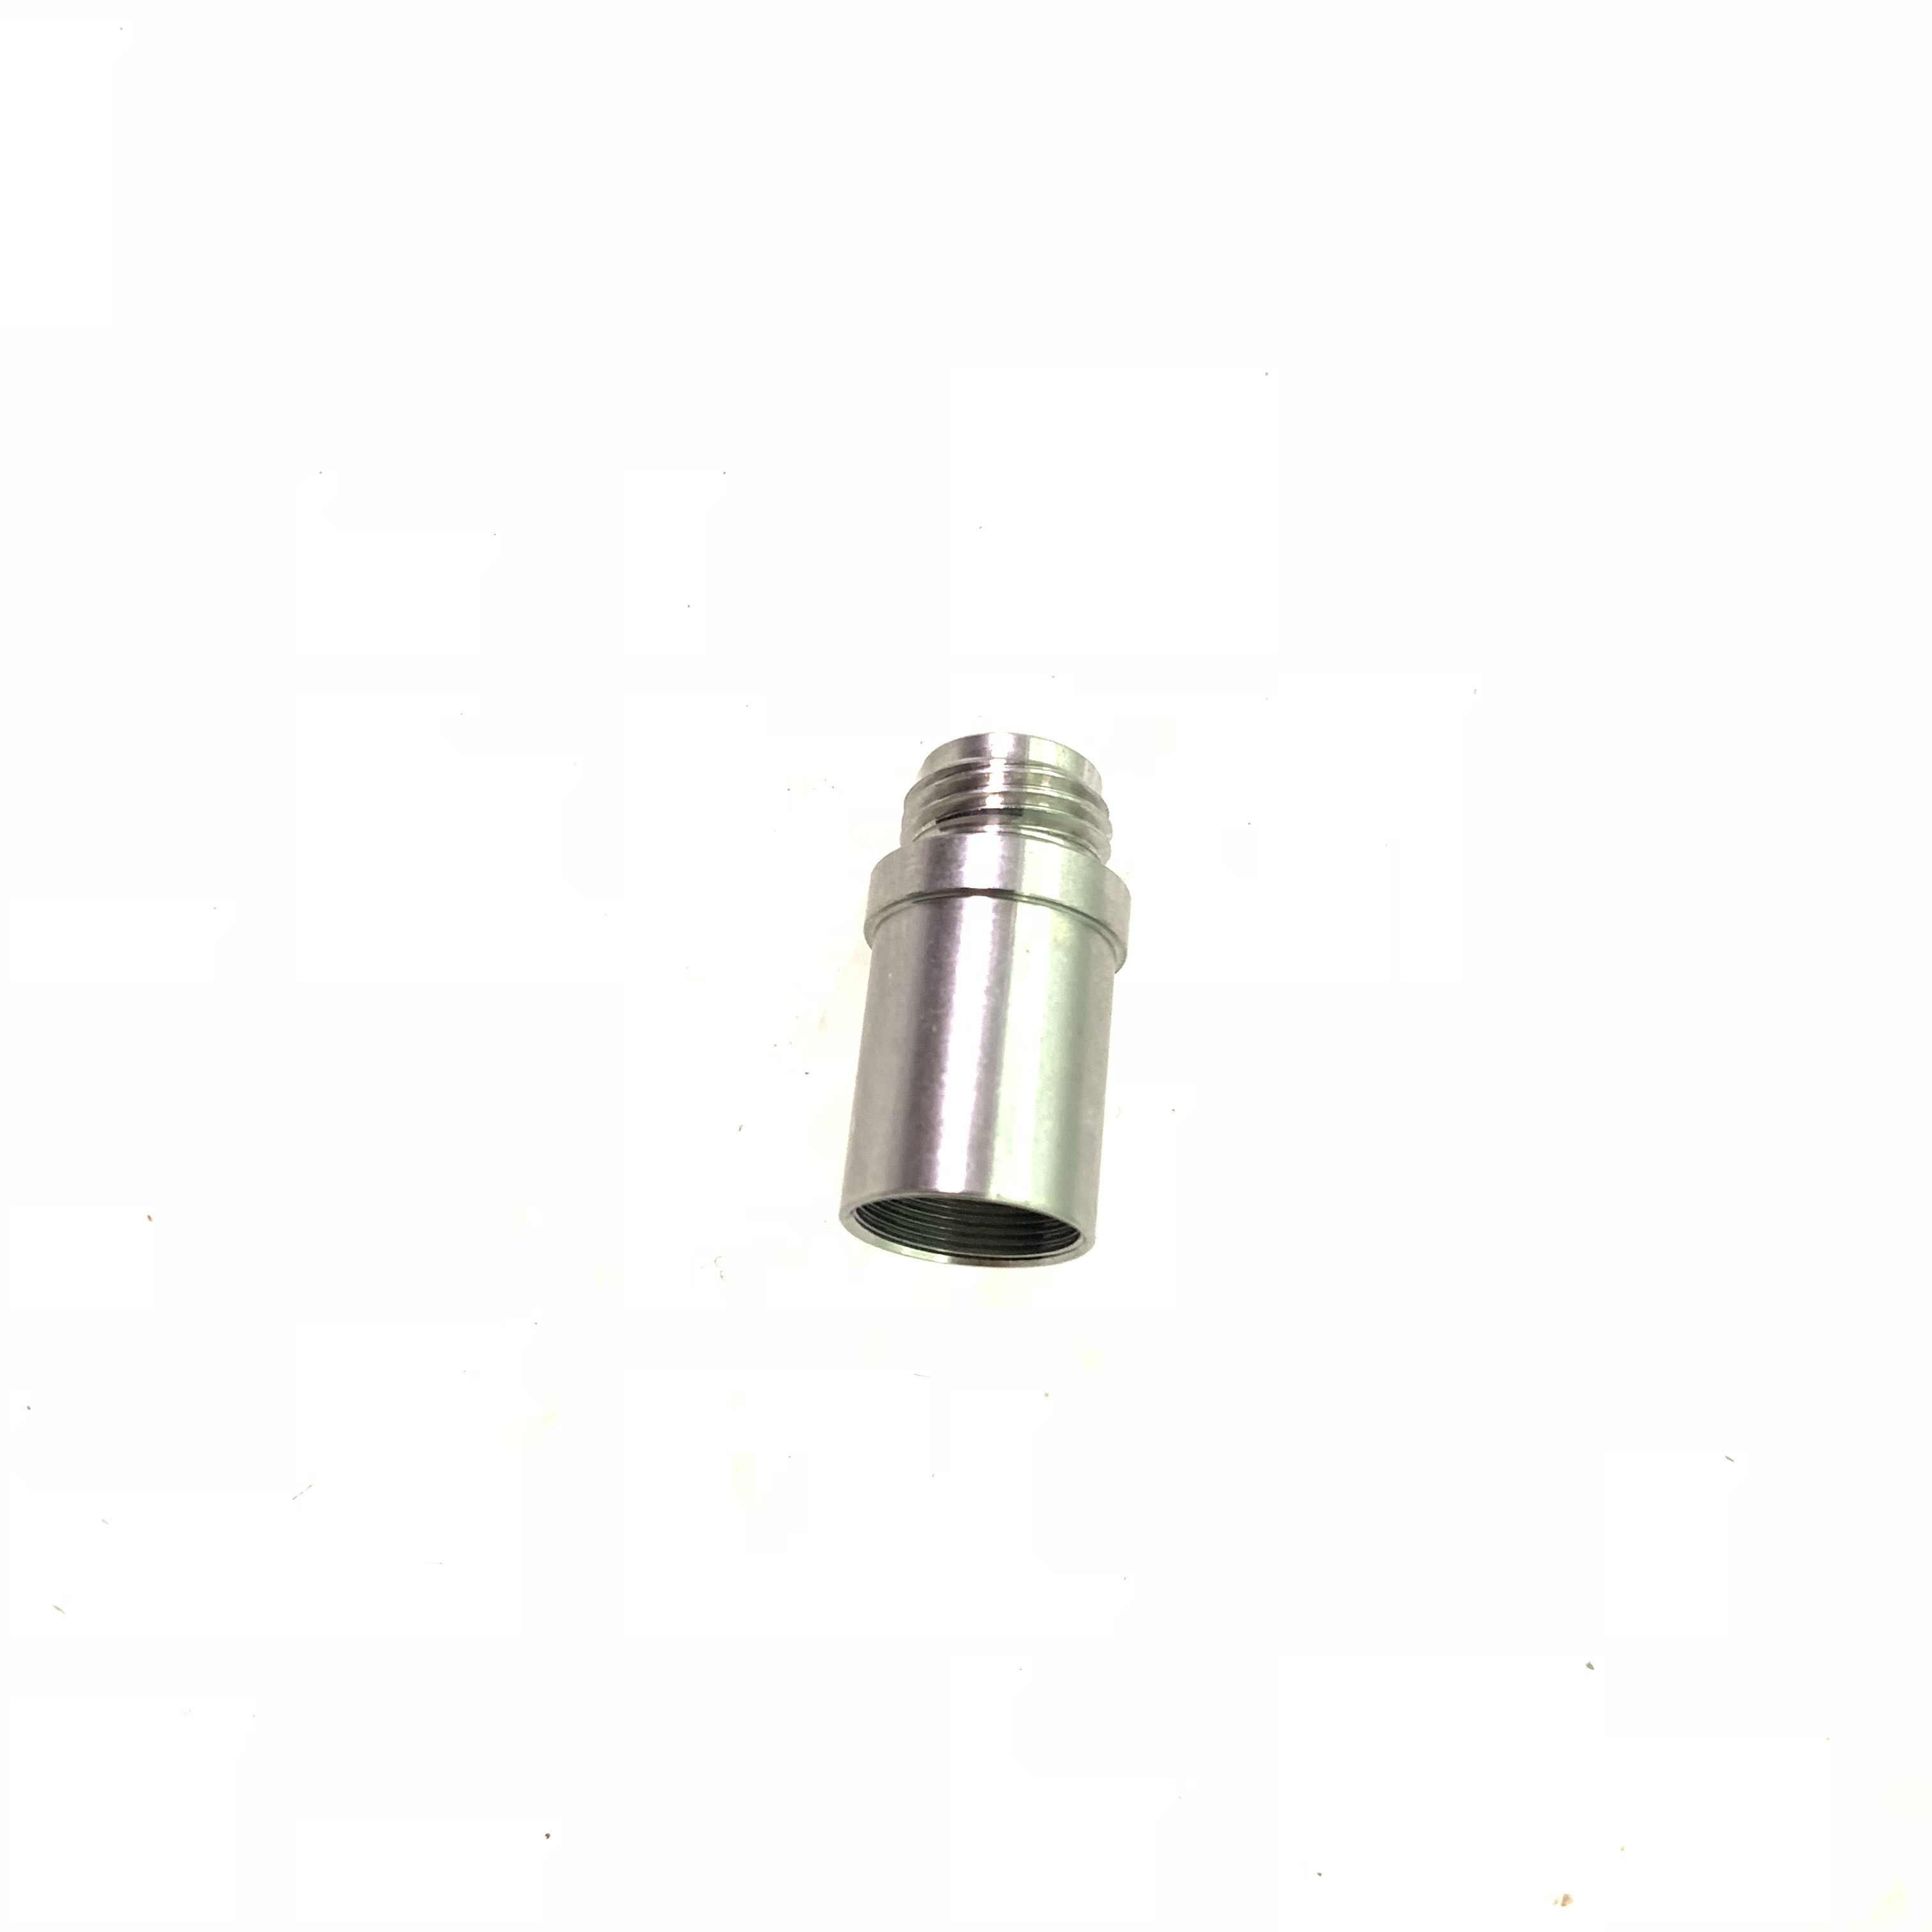 Stryker Endoscope Connector Storz Laprascopy Olympus And Dyonics  Fiber Interface Parts As Stainless Steel